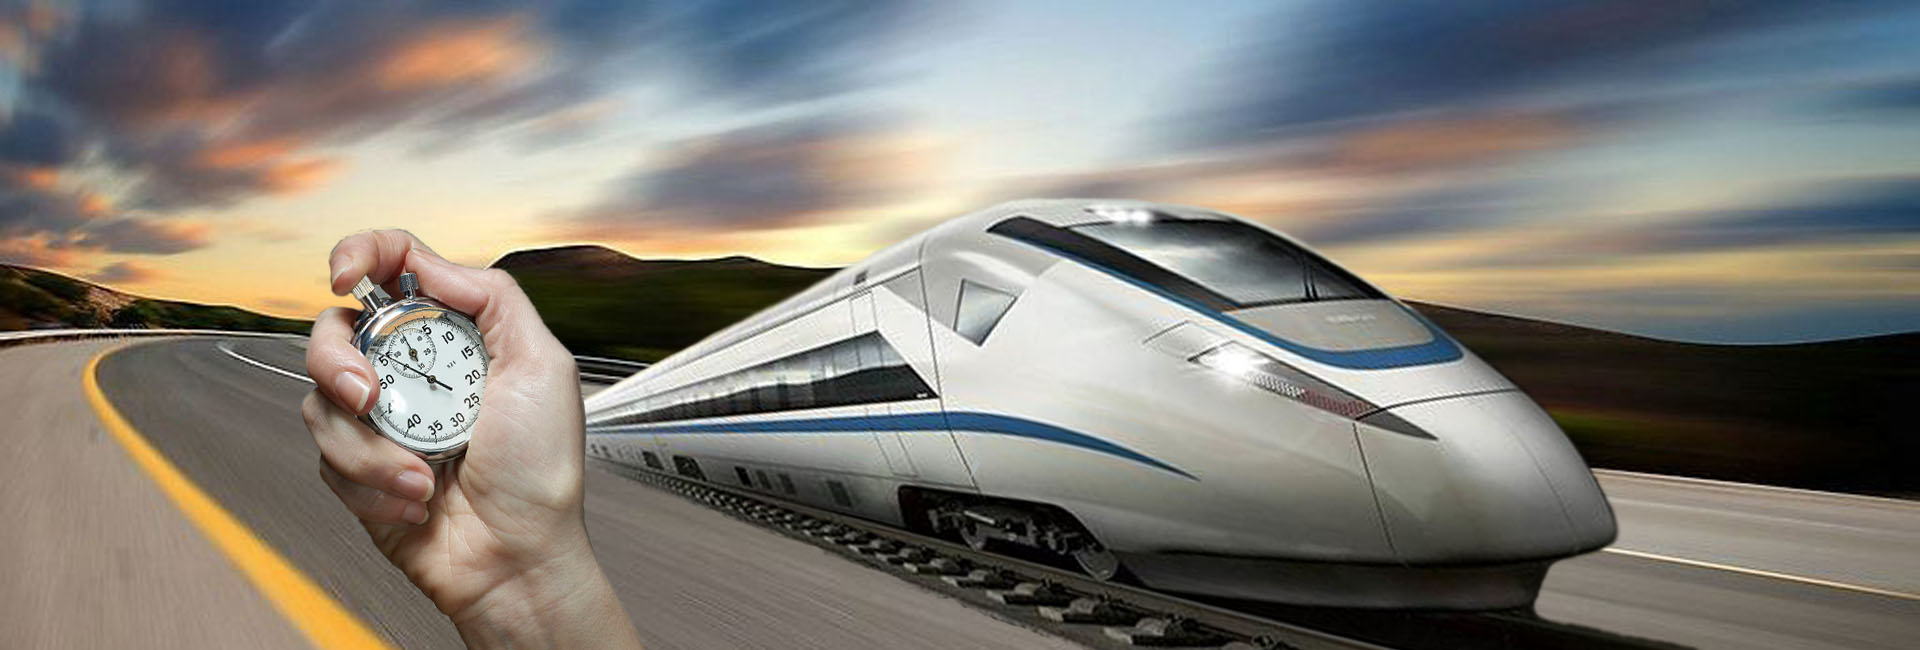 Fuxing Bullet Train in China